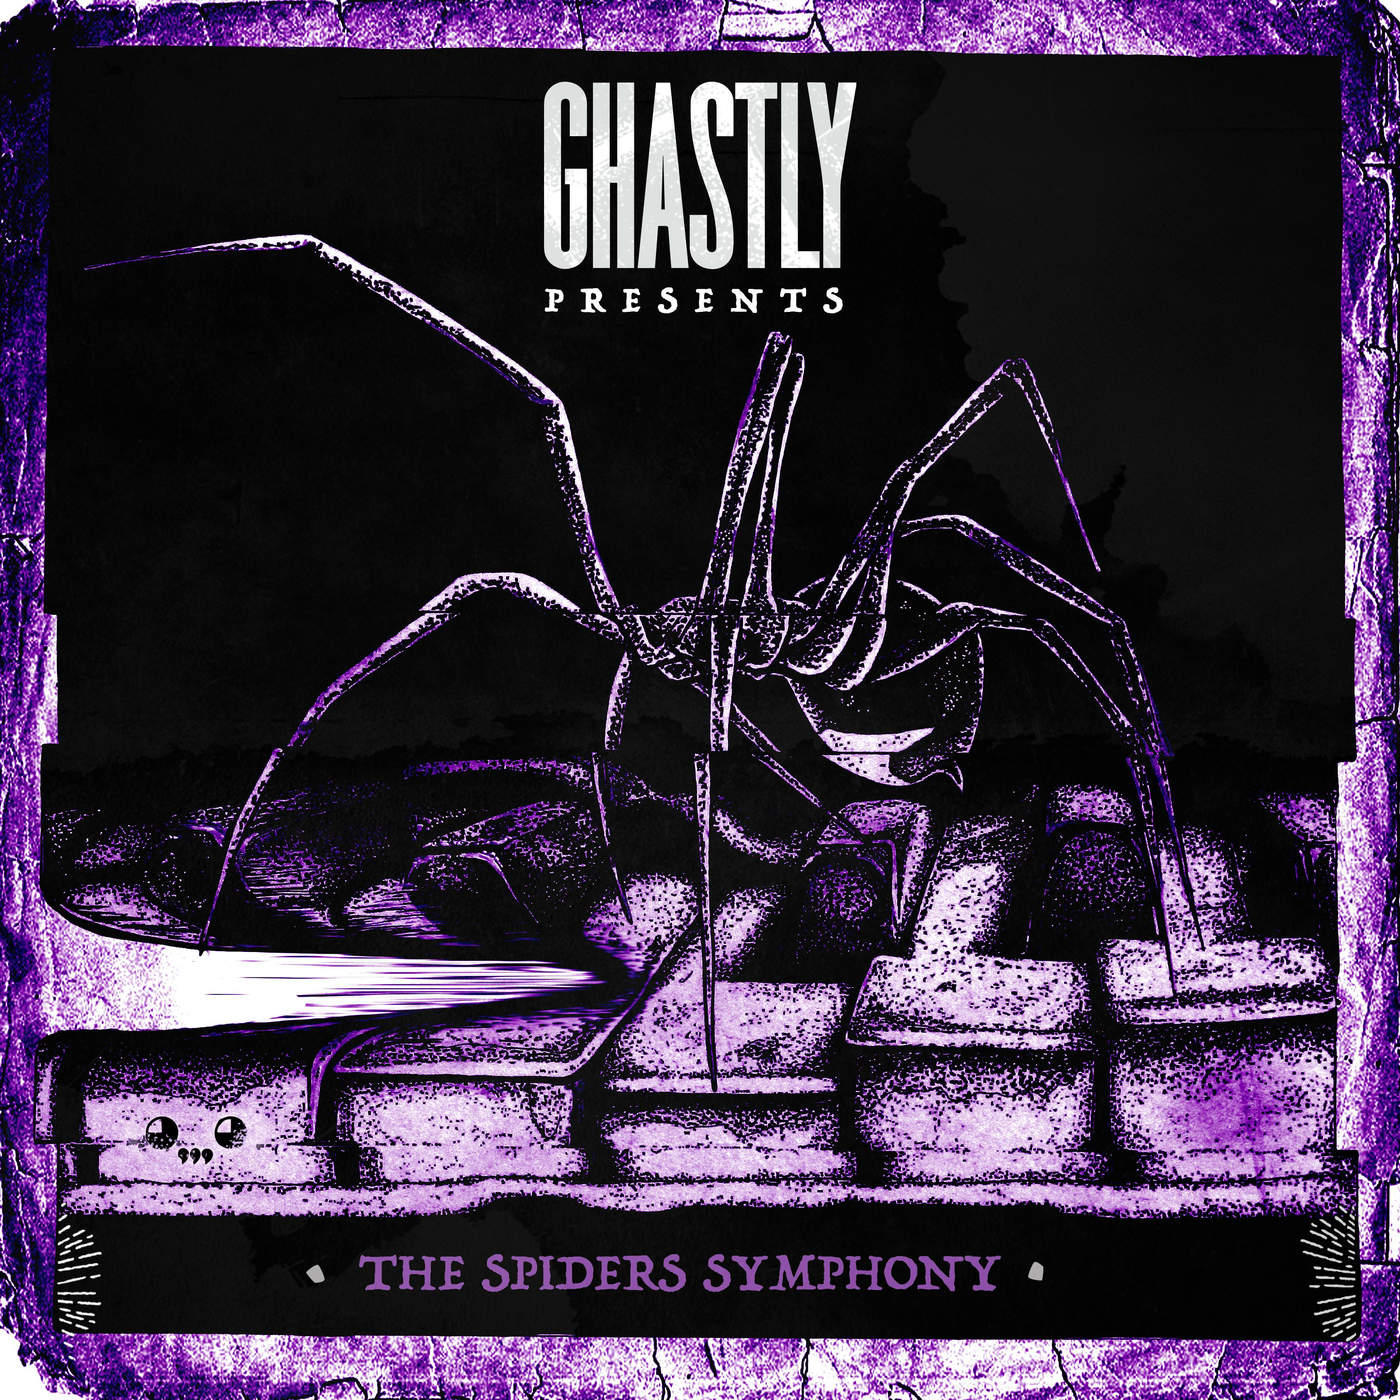 Ghastly - The Spiders Symphony - Single Cover